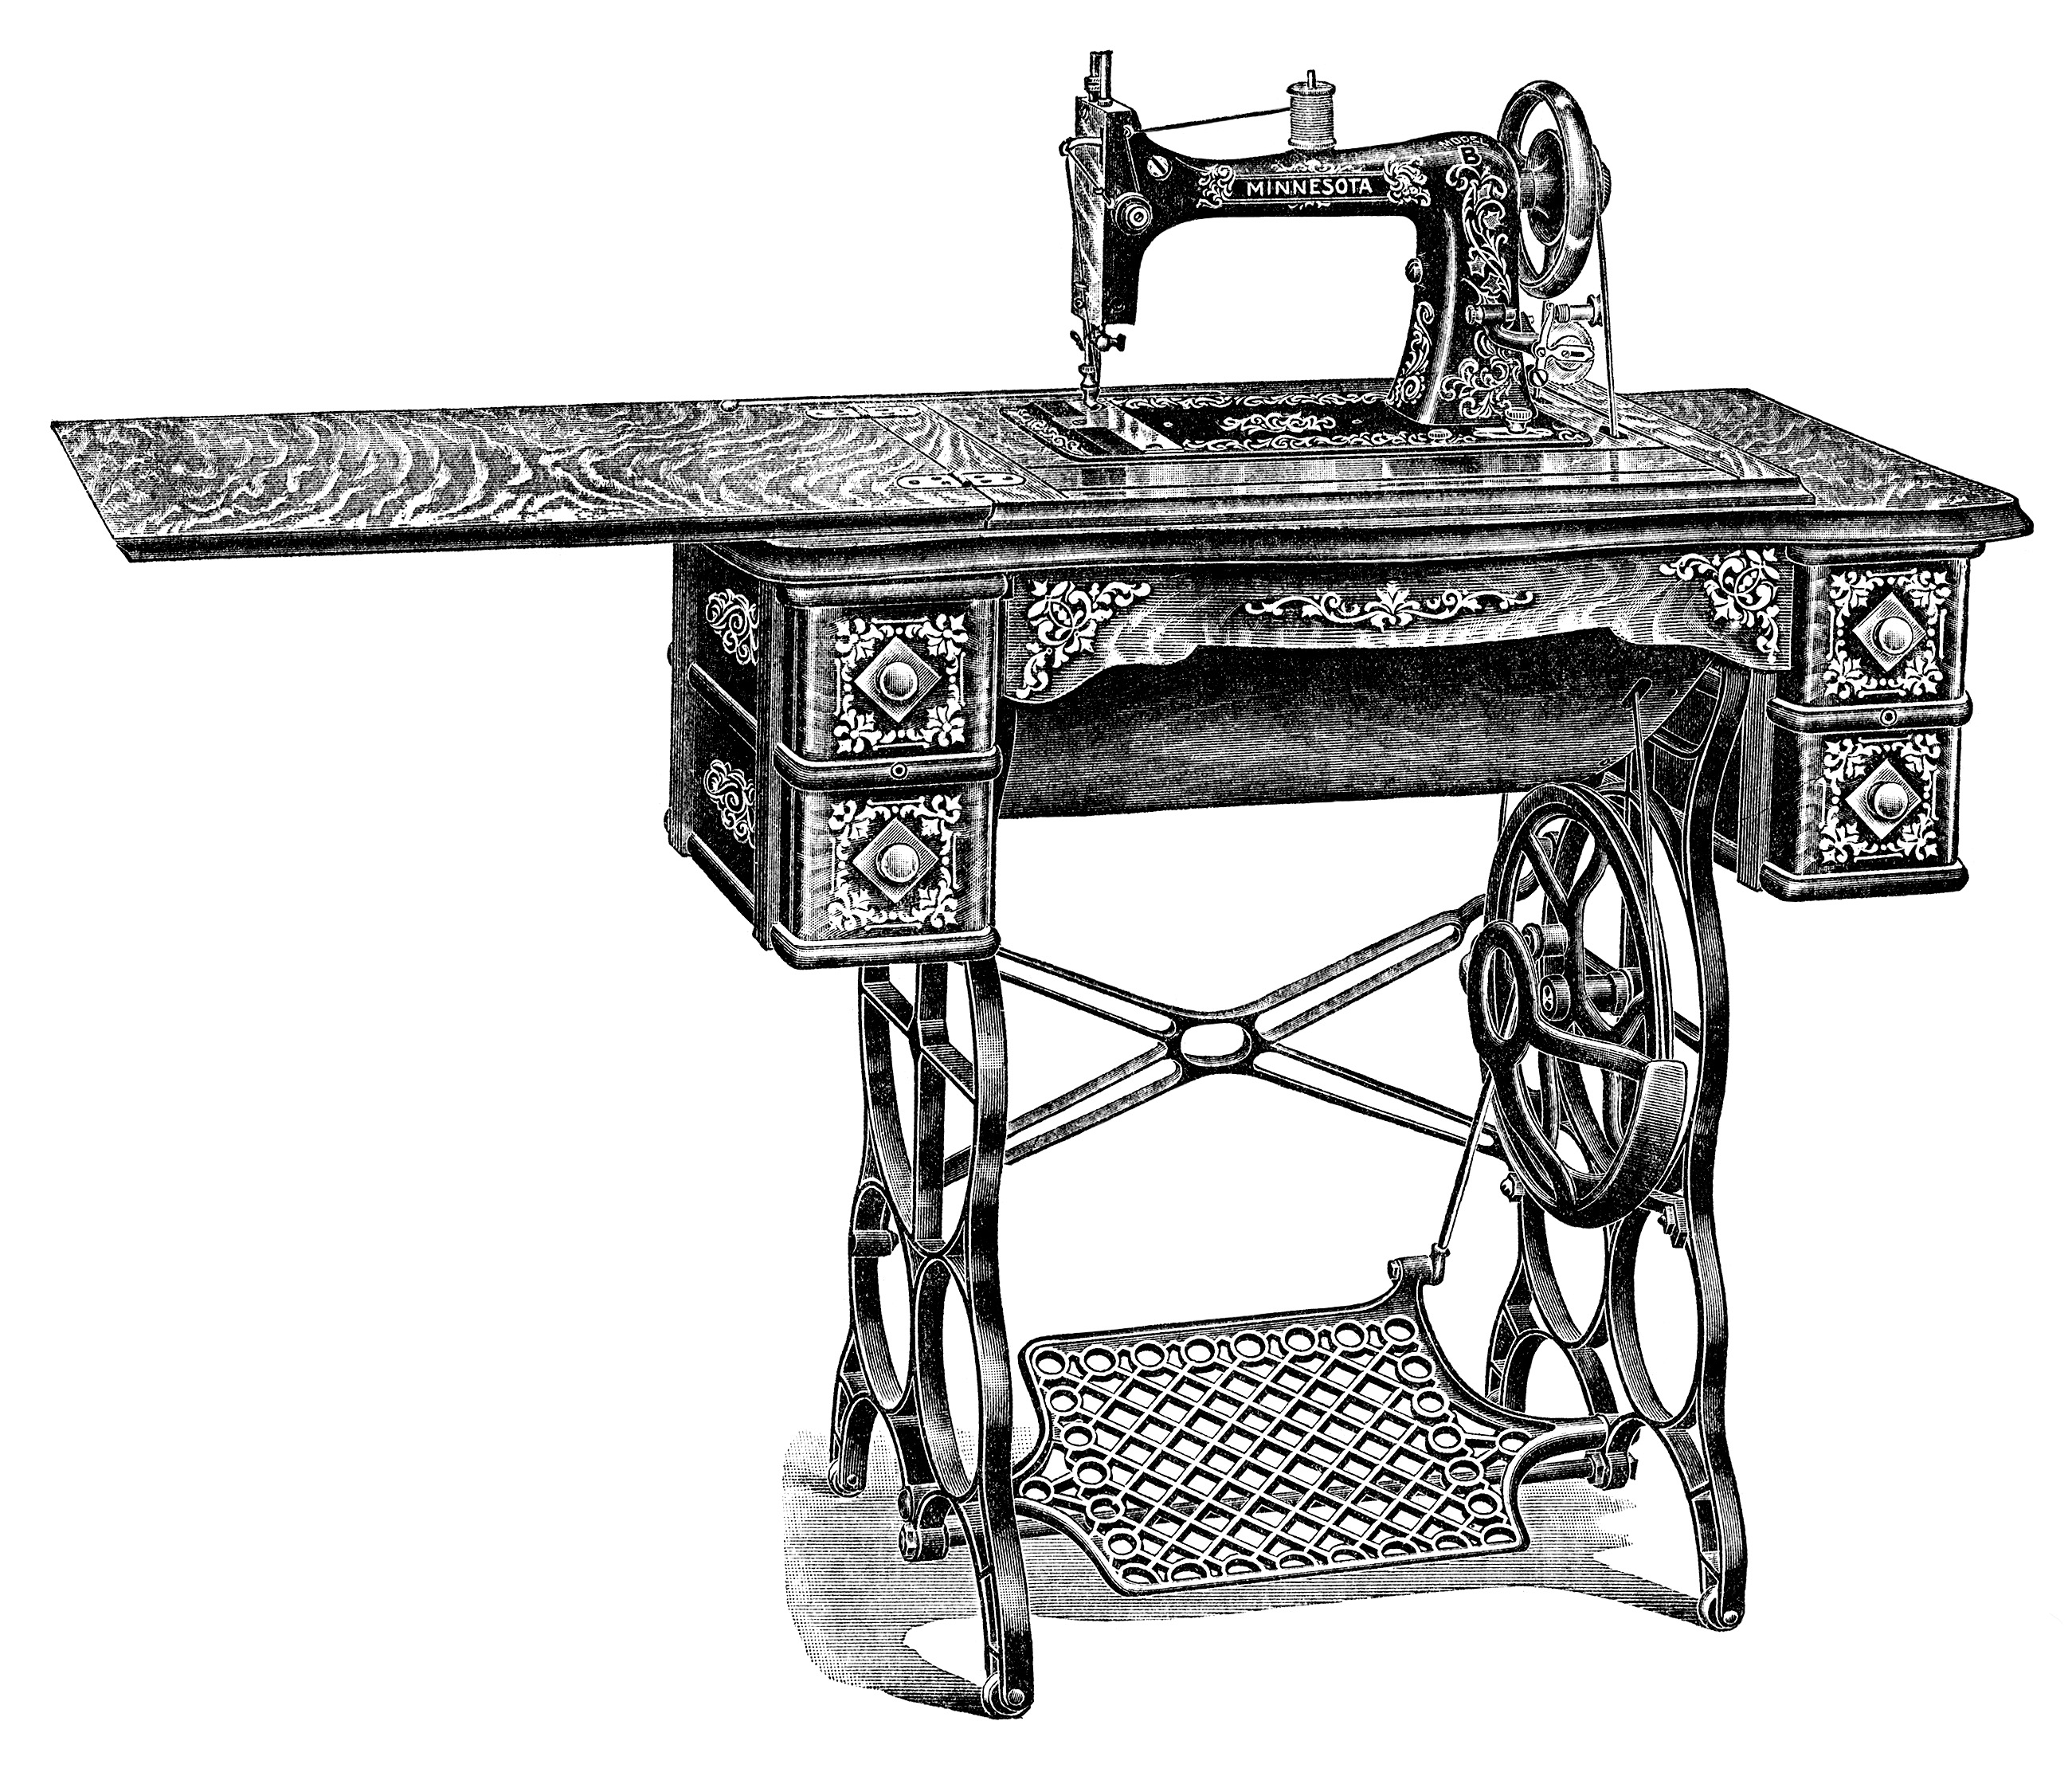 Sewing table clipart jpg free library Vintage Sewing Machine Clip Art - Old Design Shop Blog jpg free library